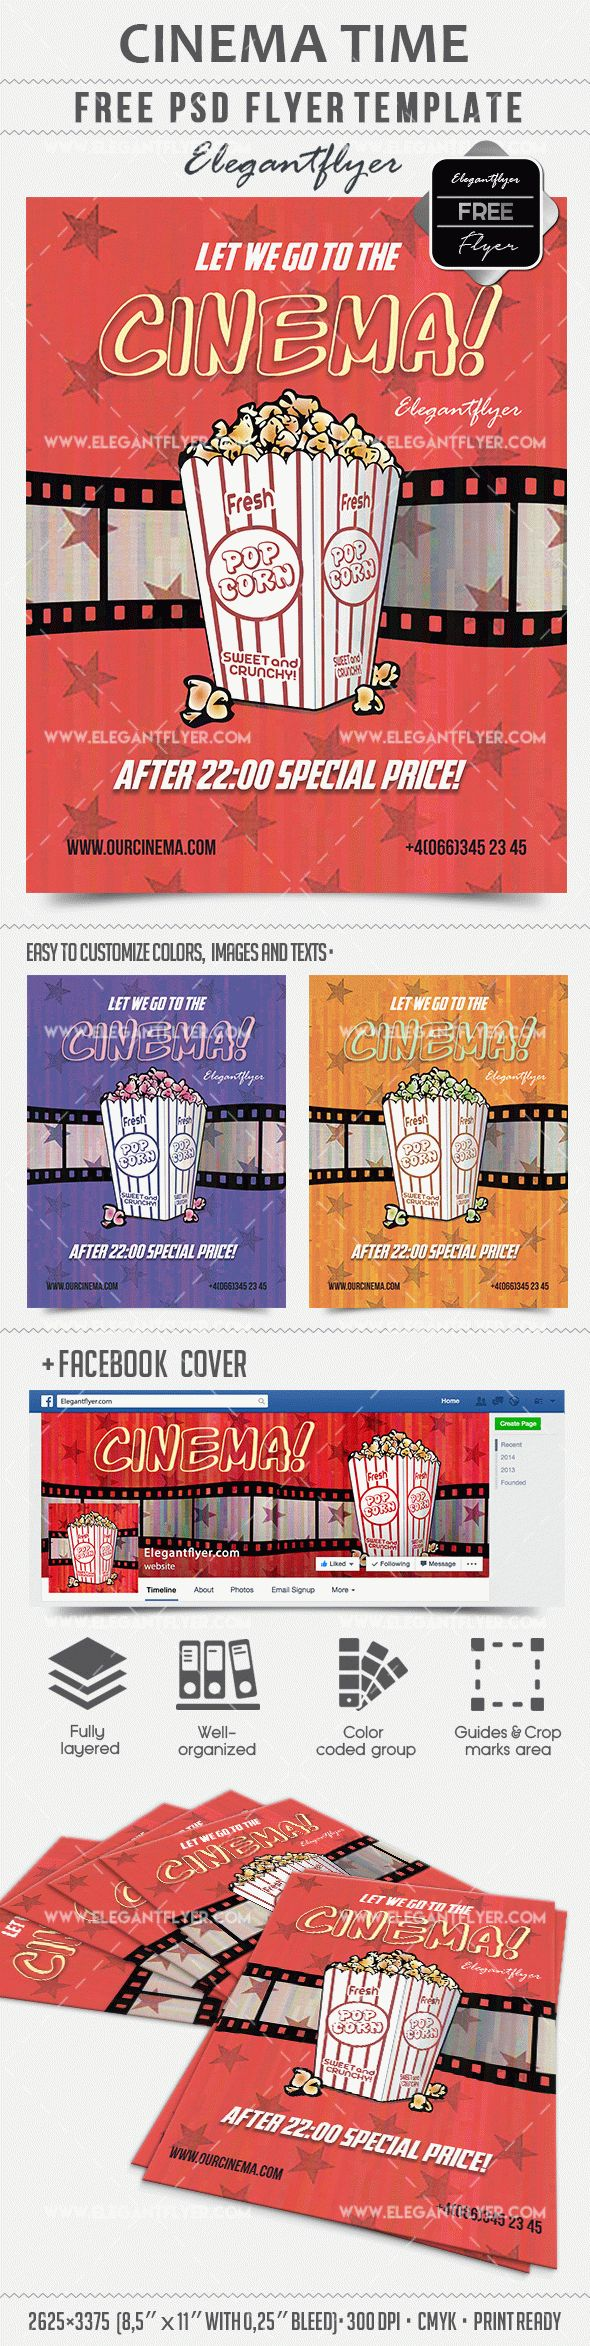 Cinema Time – Free Flyer PSD Template + Facebook cover